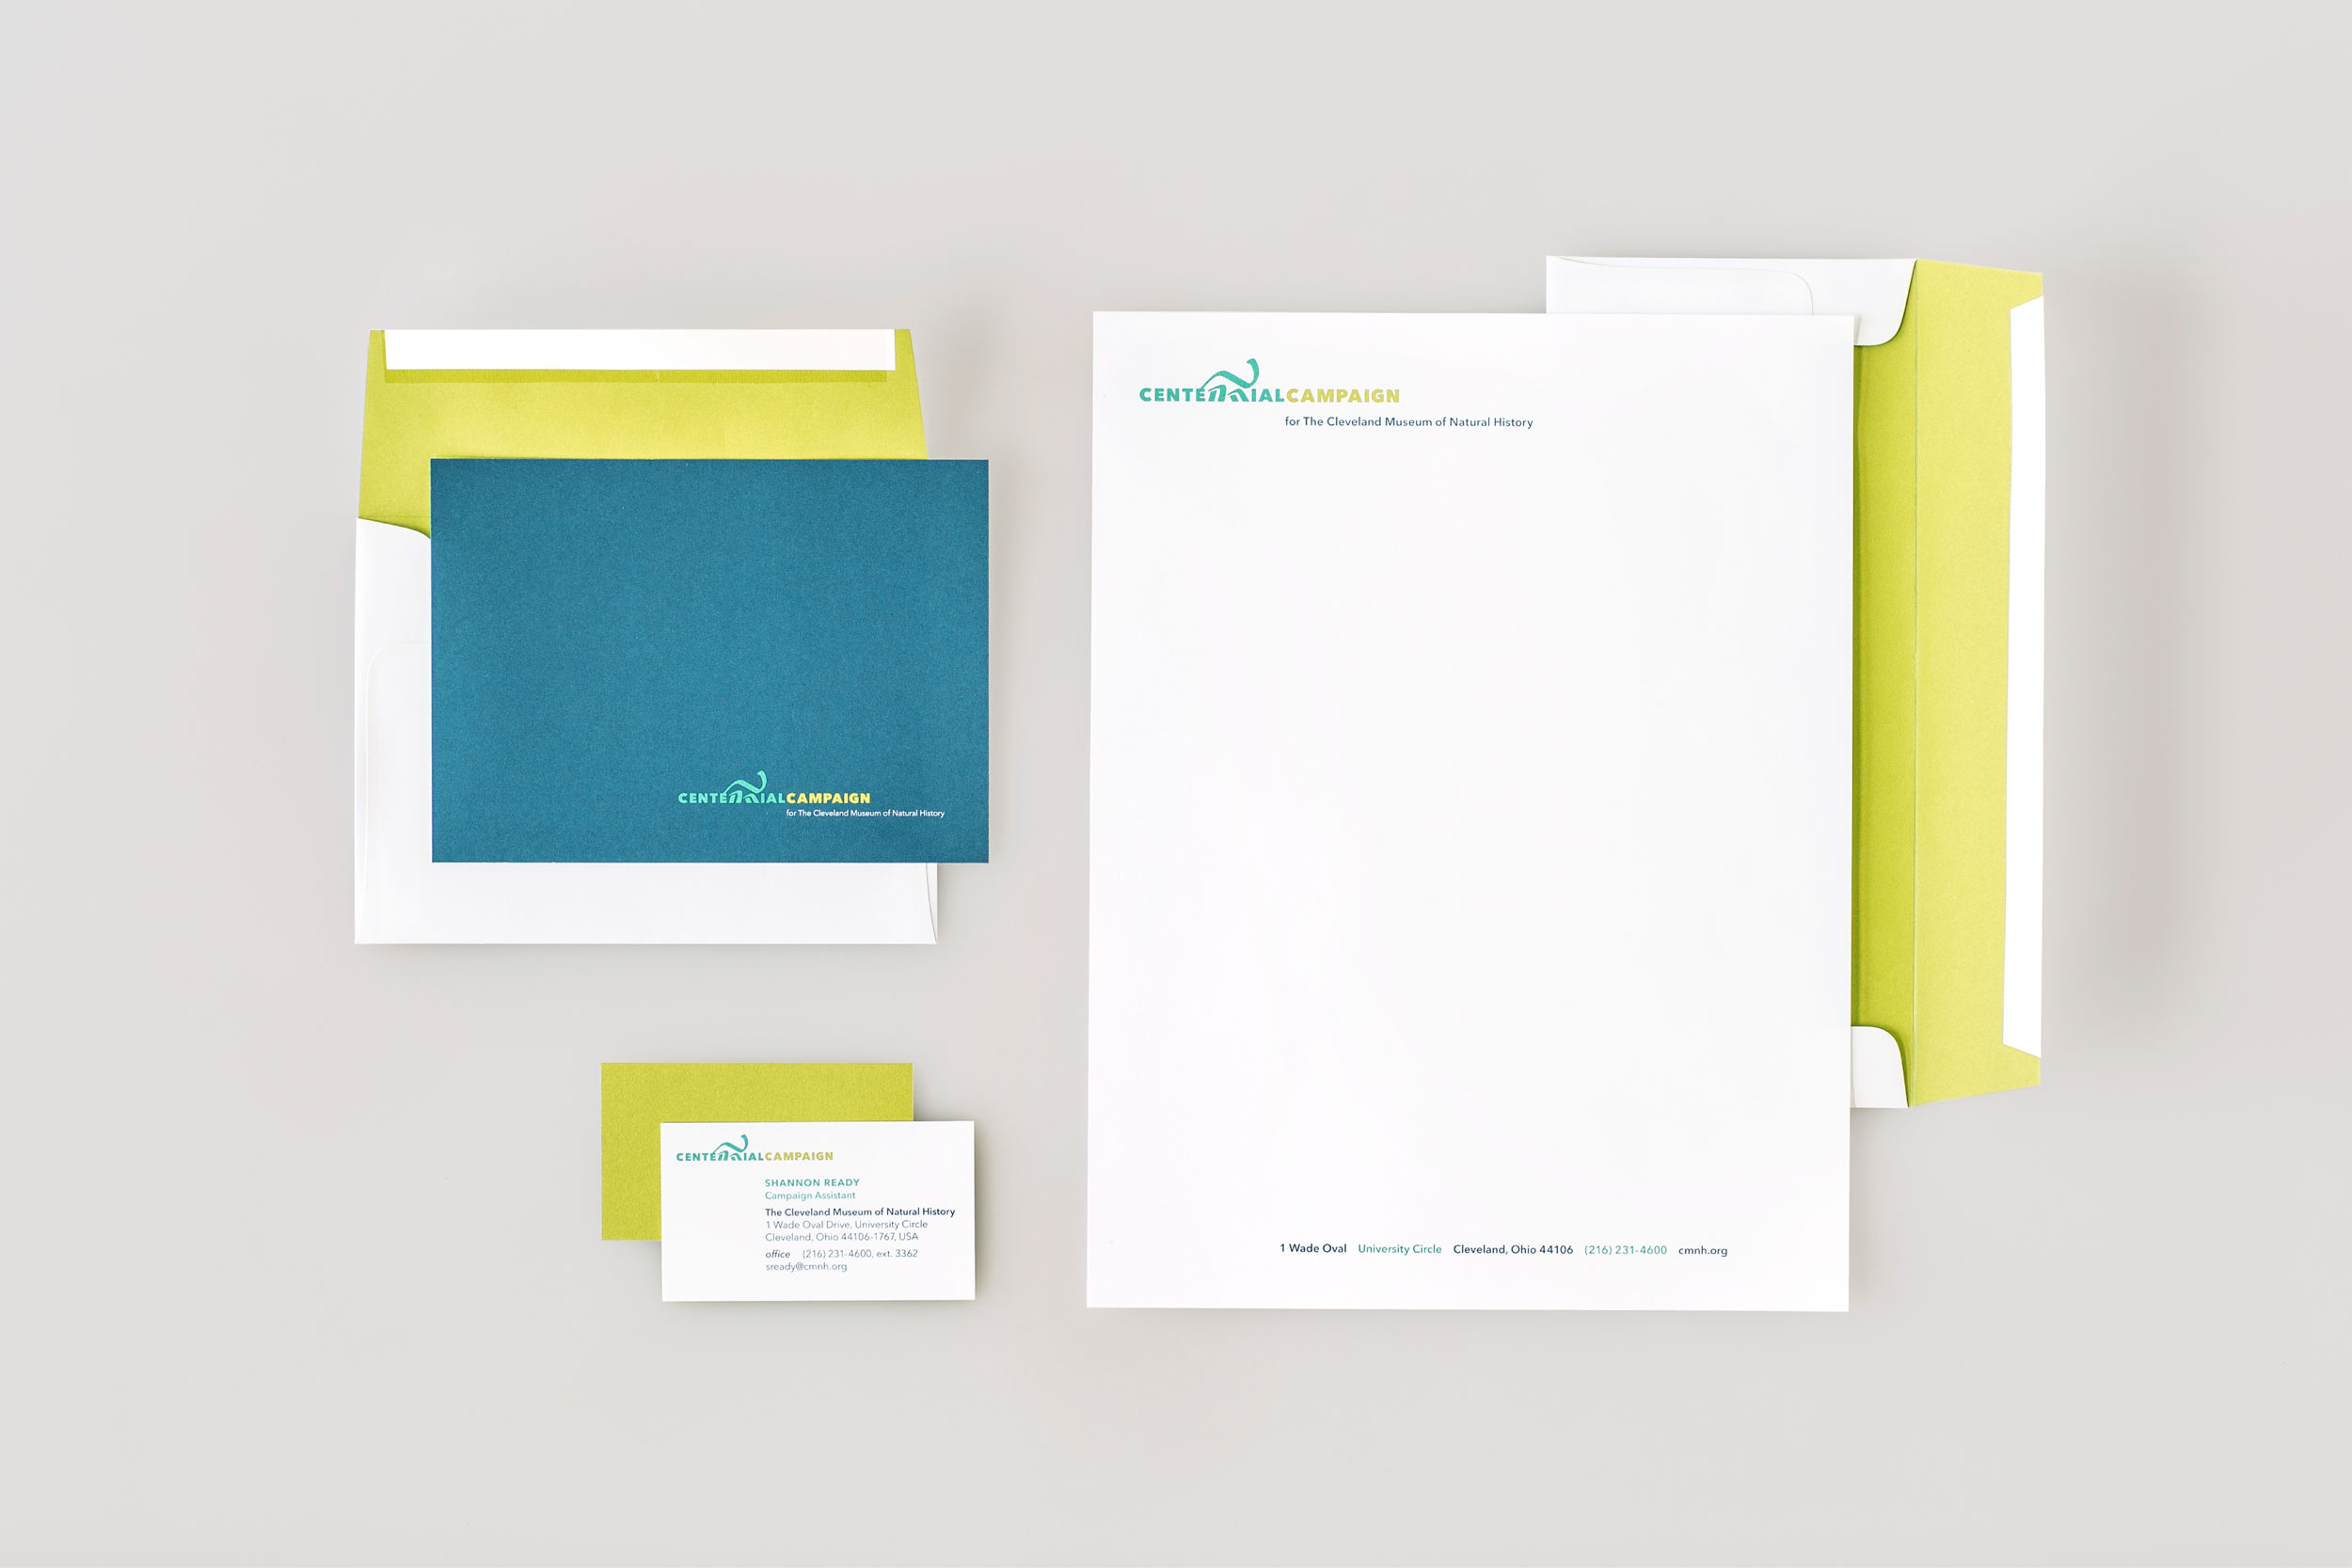 Agnes Studio Cleveland Museum of Natural History Centennial Campaign stationery